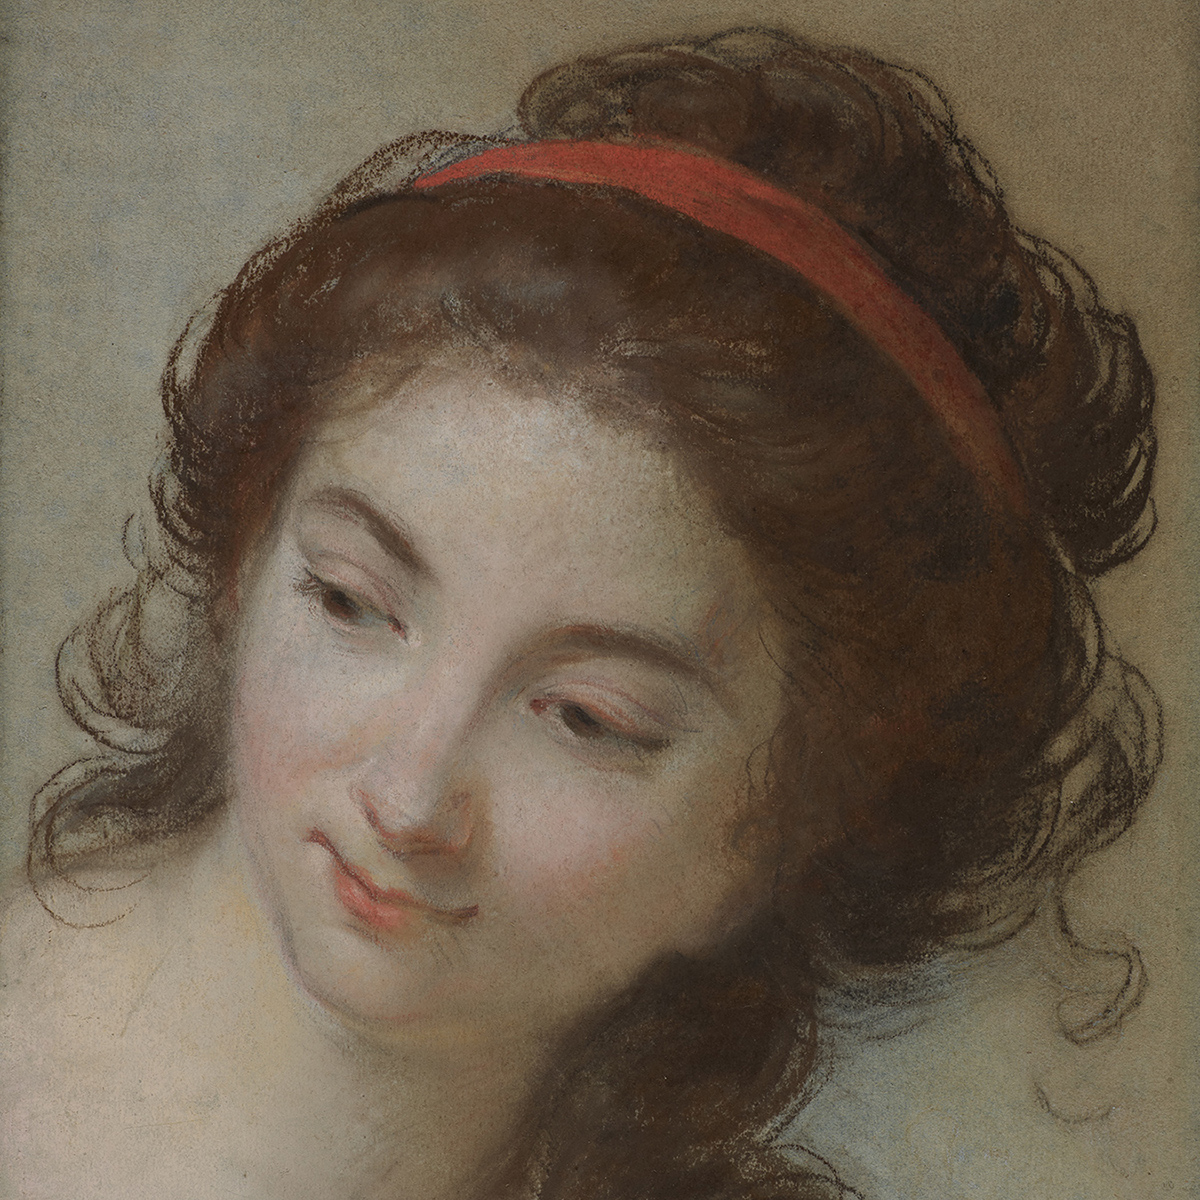 A pastel drawing of a young woman turned to the side. She wears a red ribbon in her brown hair